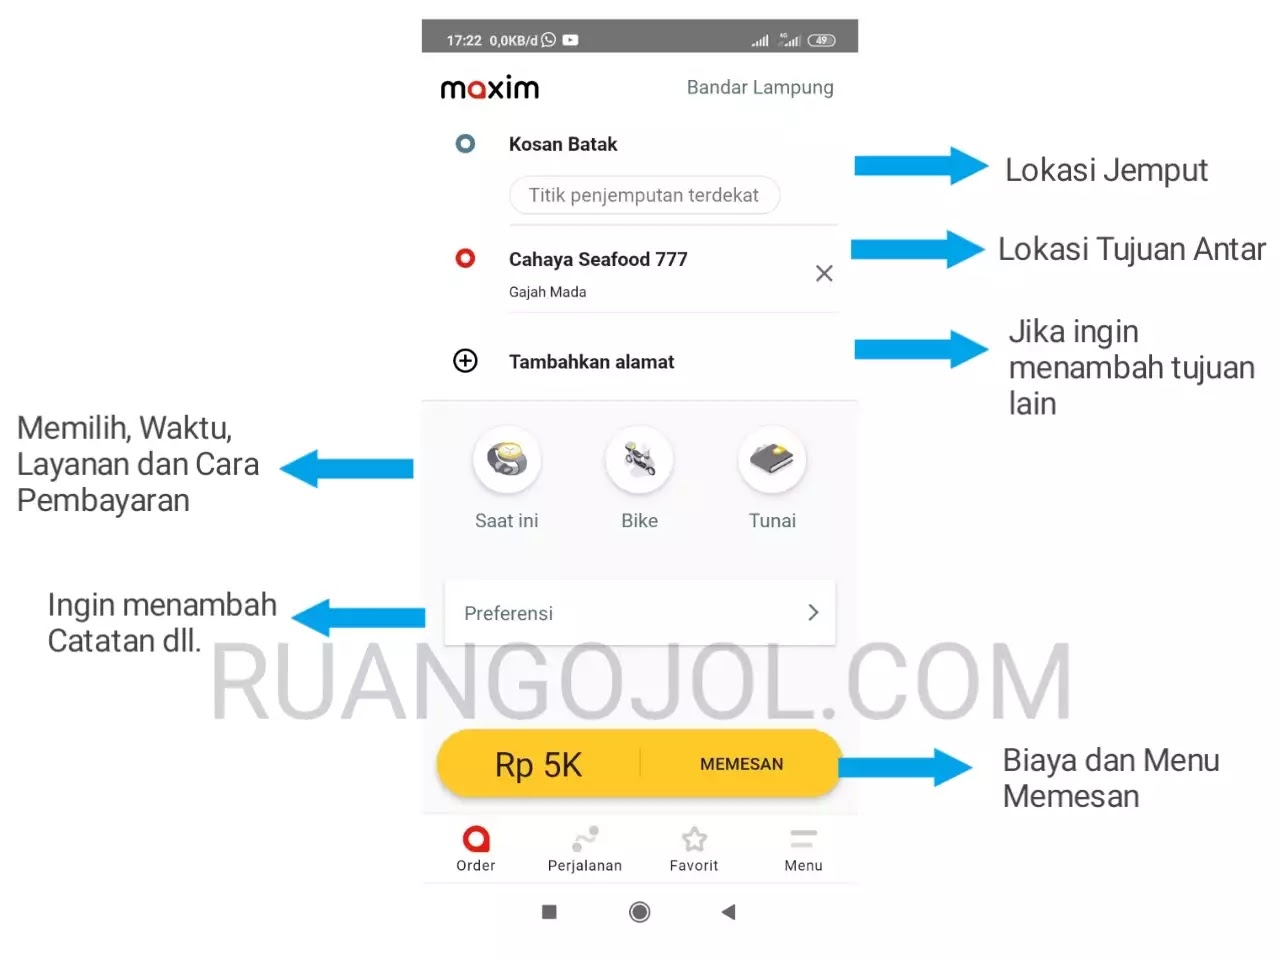 Cara order maxim bike dan car